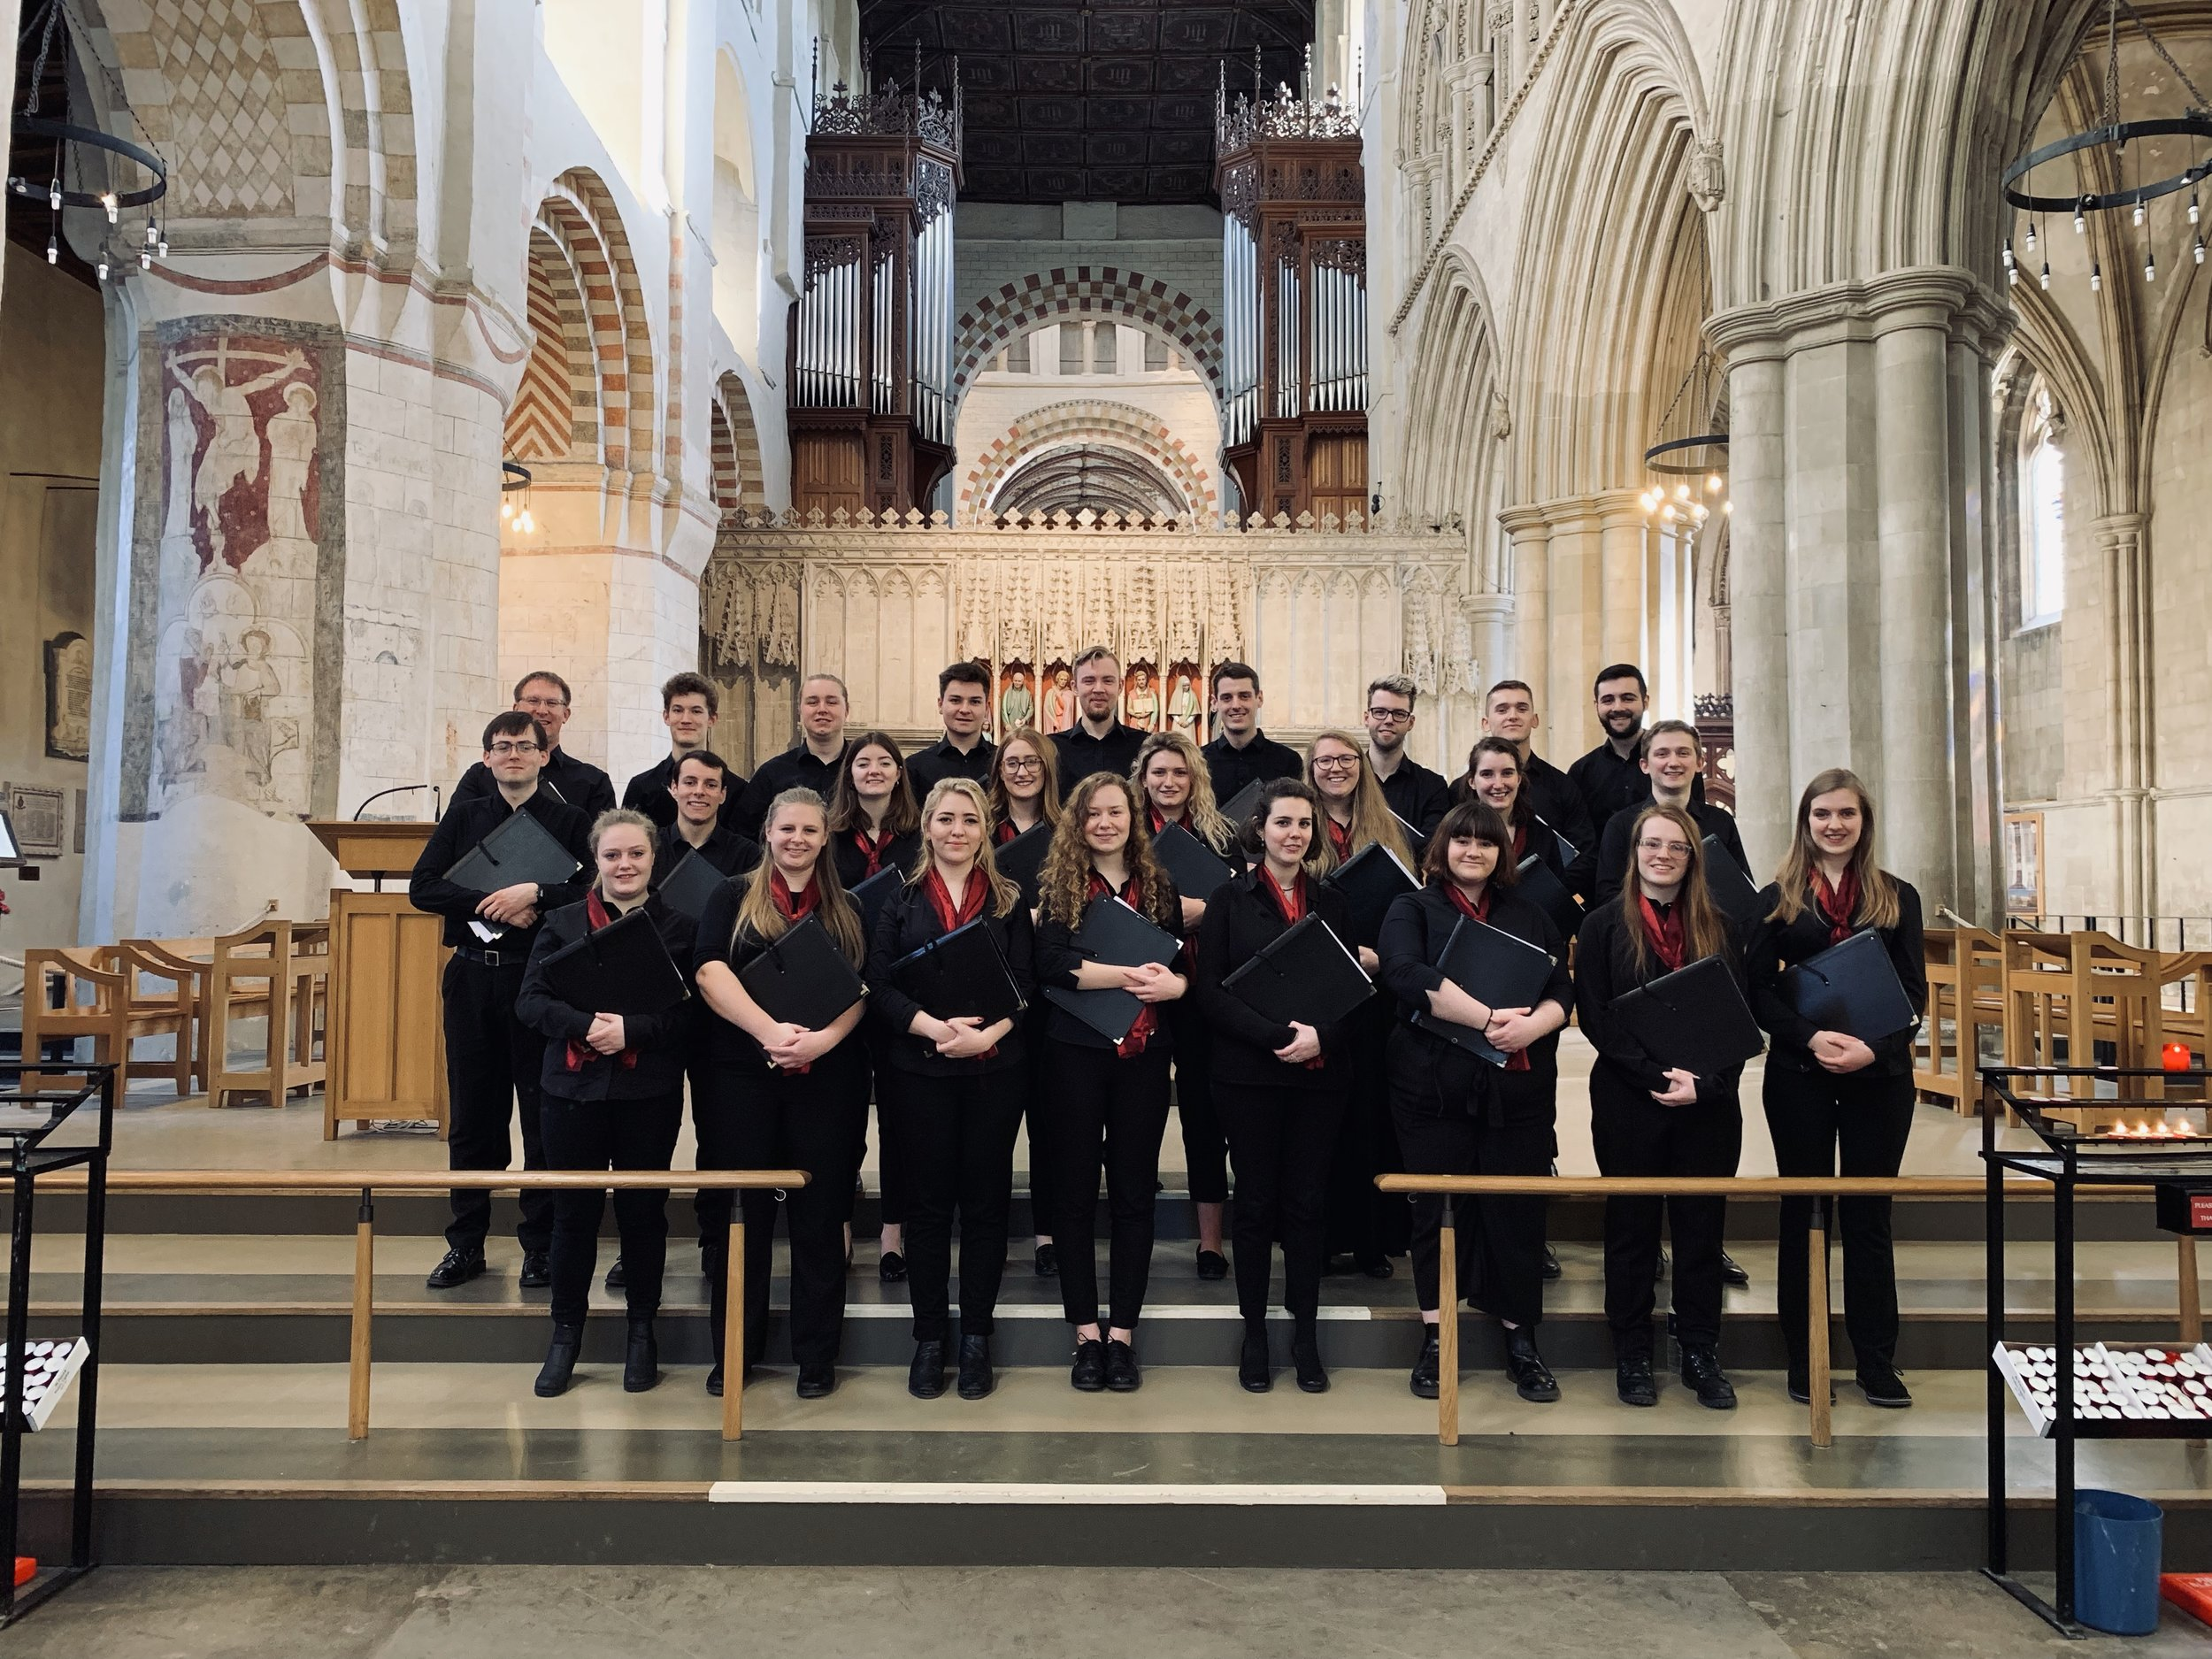 Singing at St Alban's Cathedral